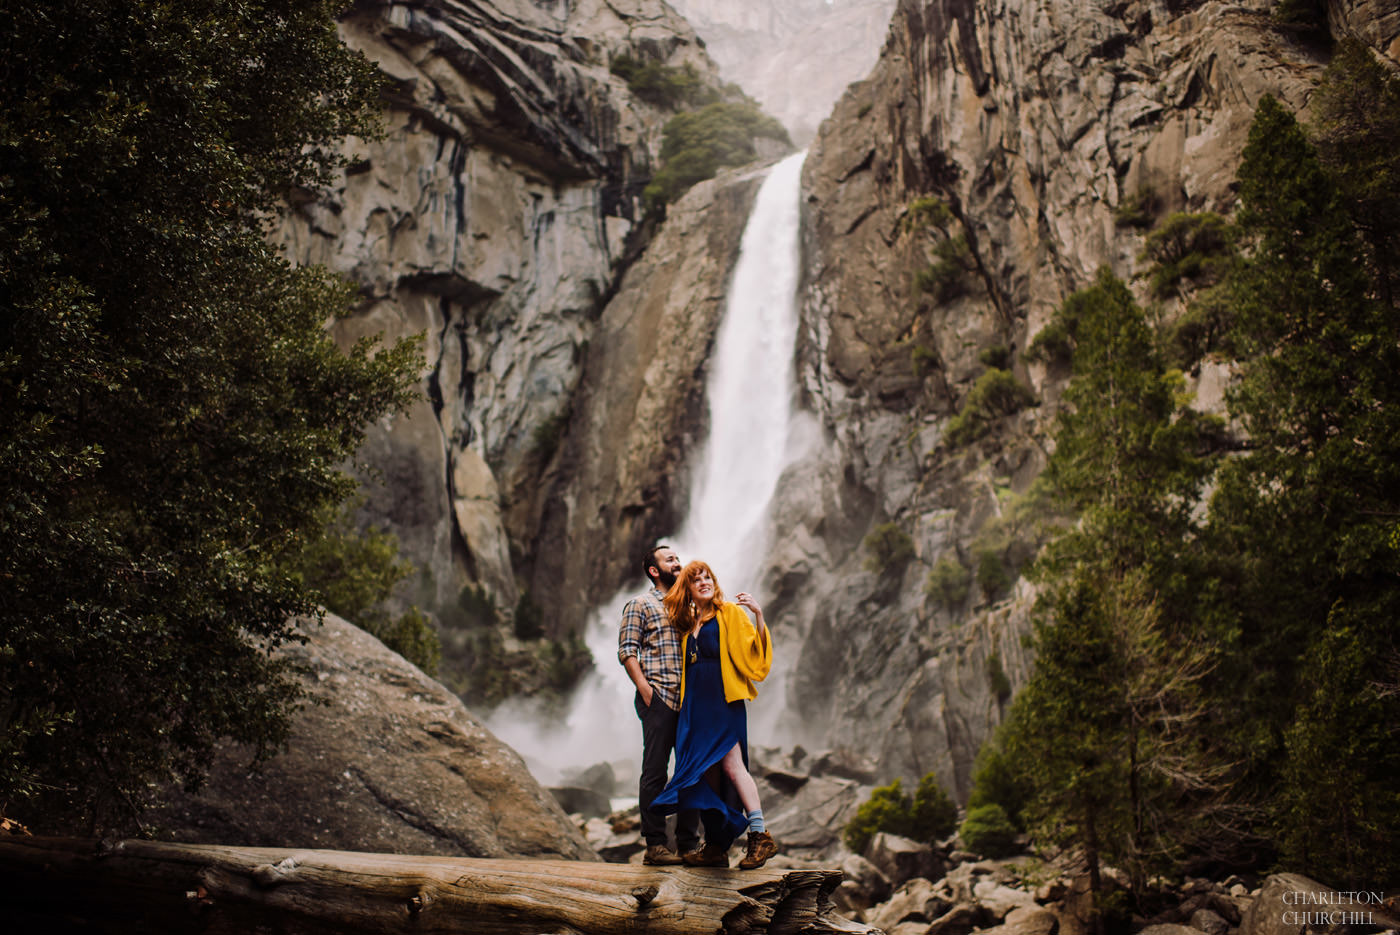 yosemite waterfalls engagement photos at national park woodsy and rocky landscape